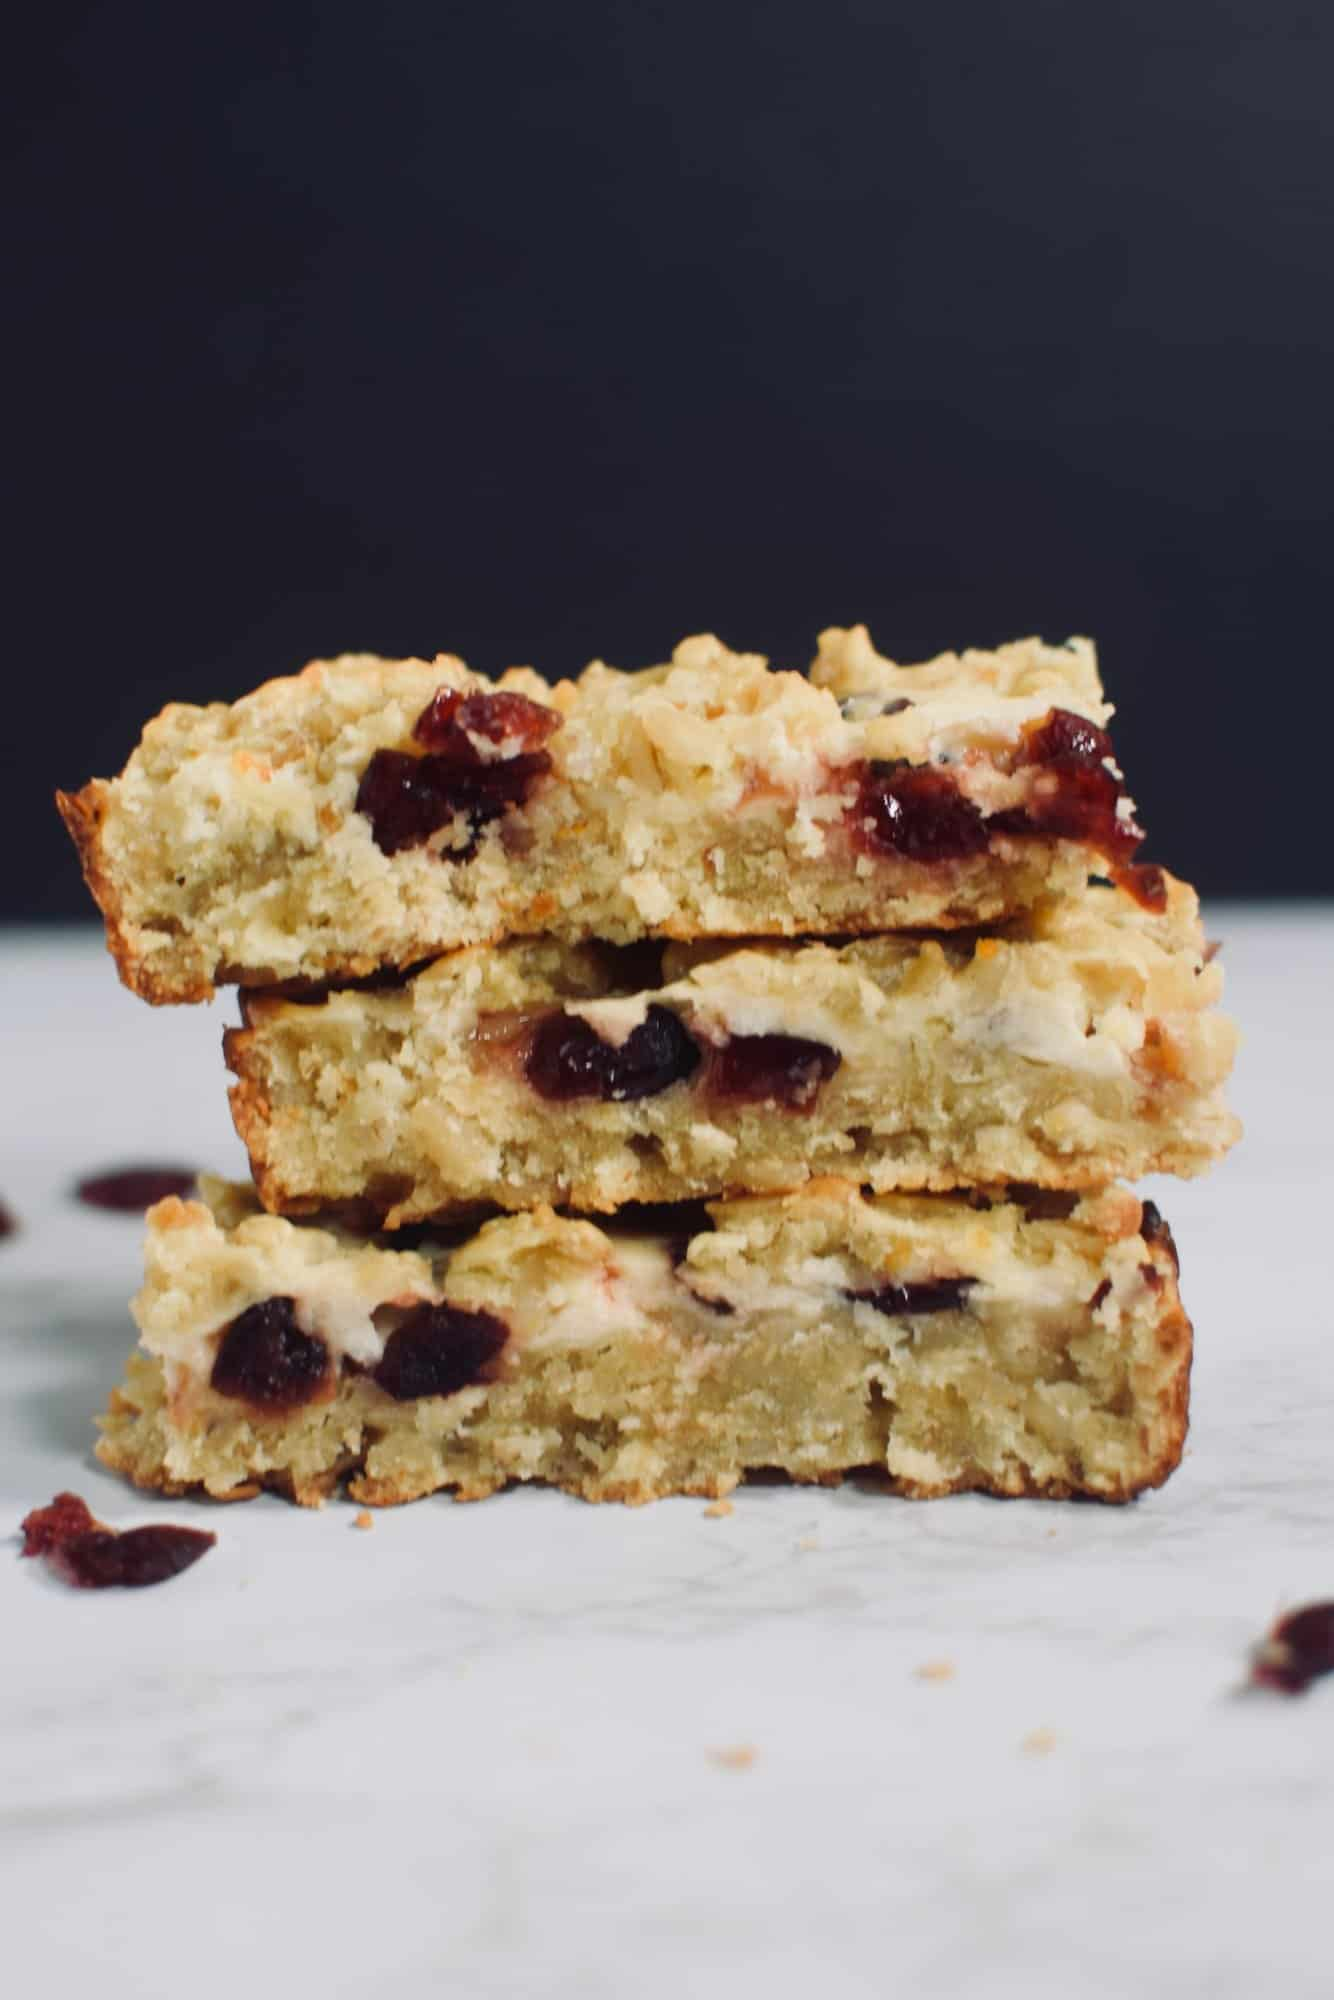 3 Cranberry Orange Barley Bars stacked on top of one another. From TheIncredibleBulks.com